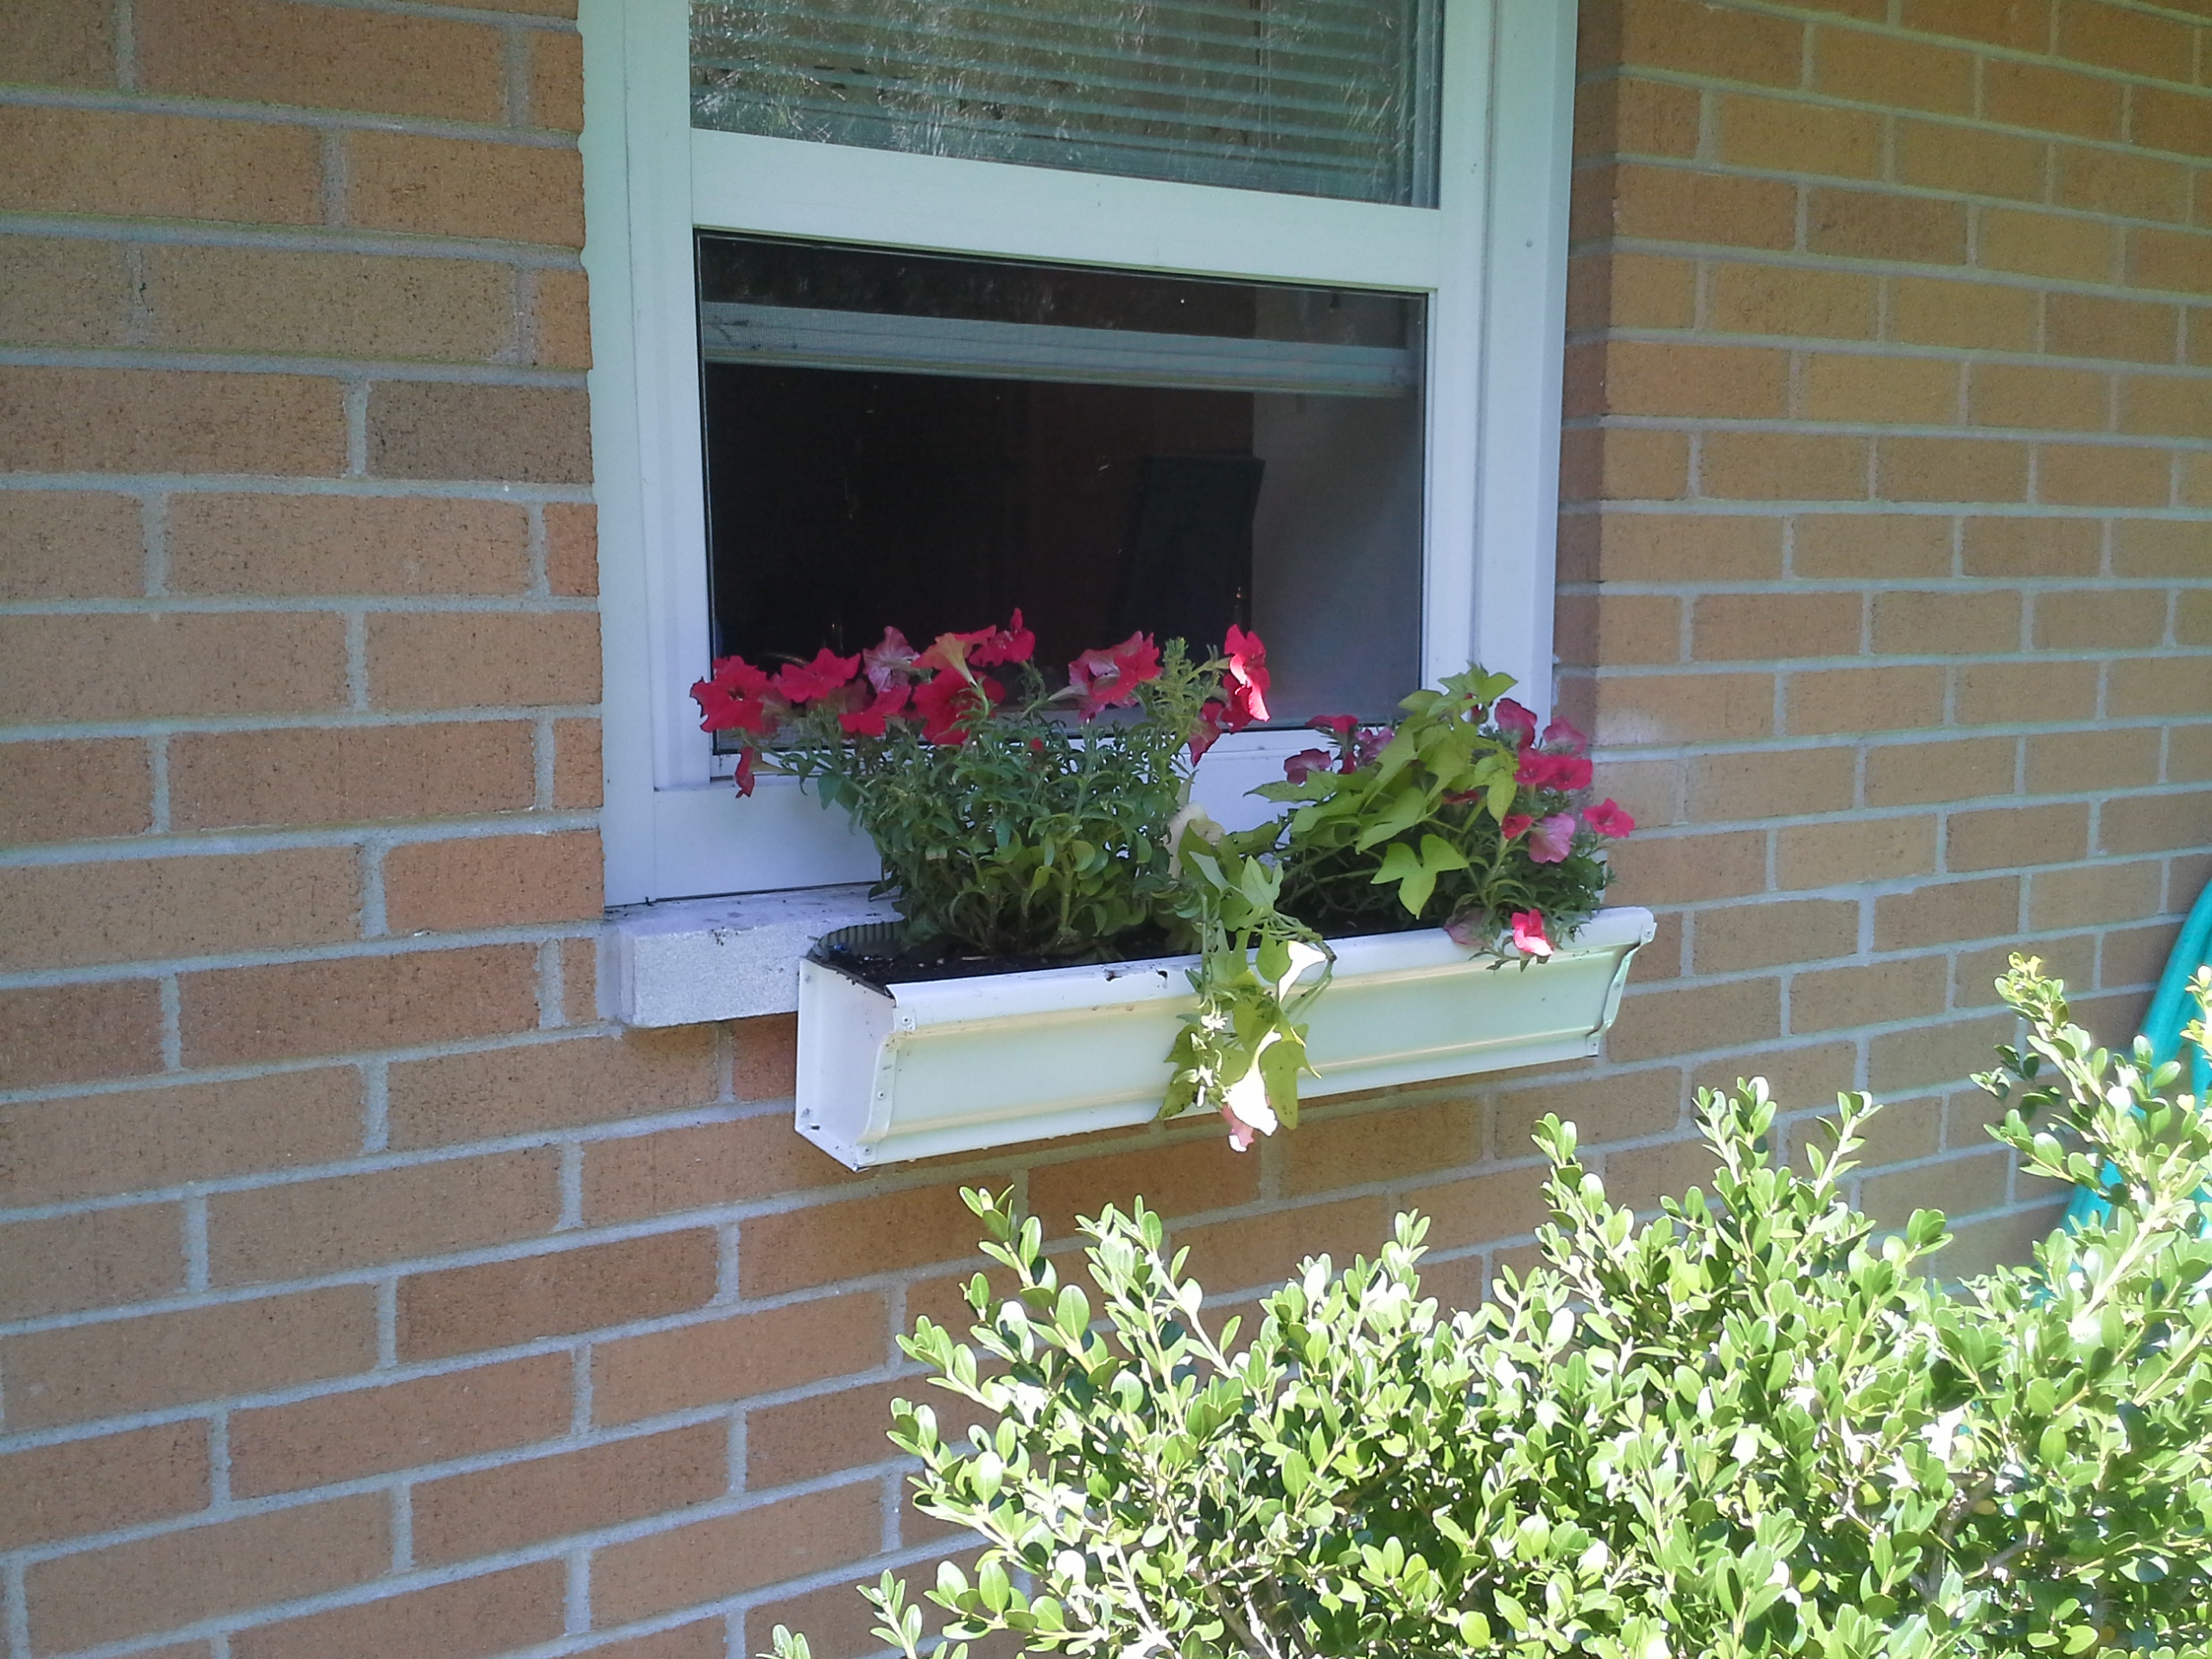 Stand Up Gardening With A Window Box On Concrete Sill